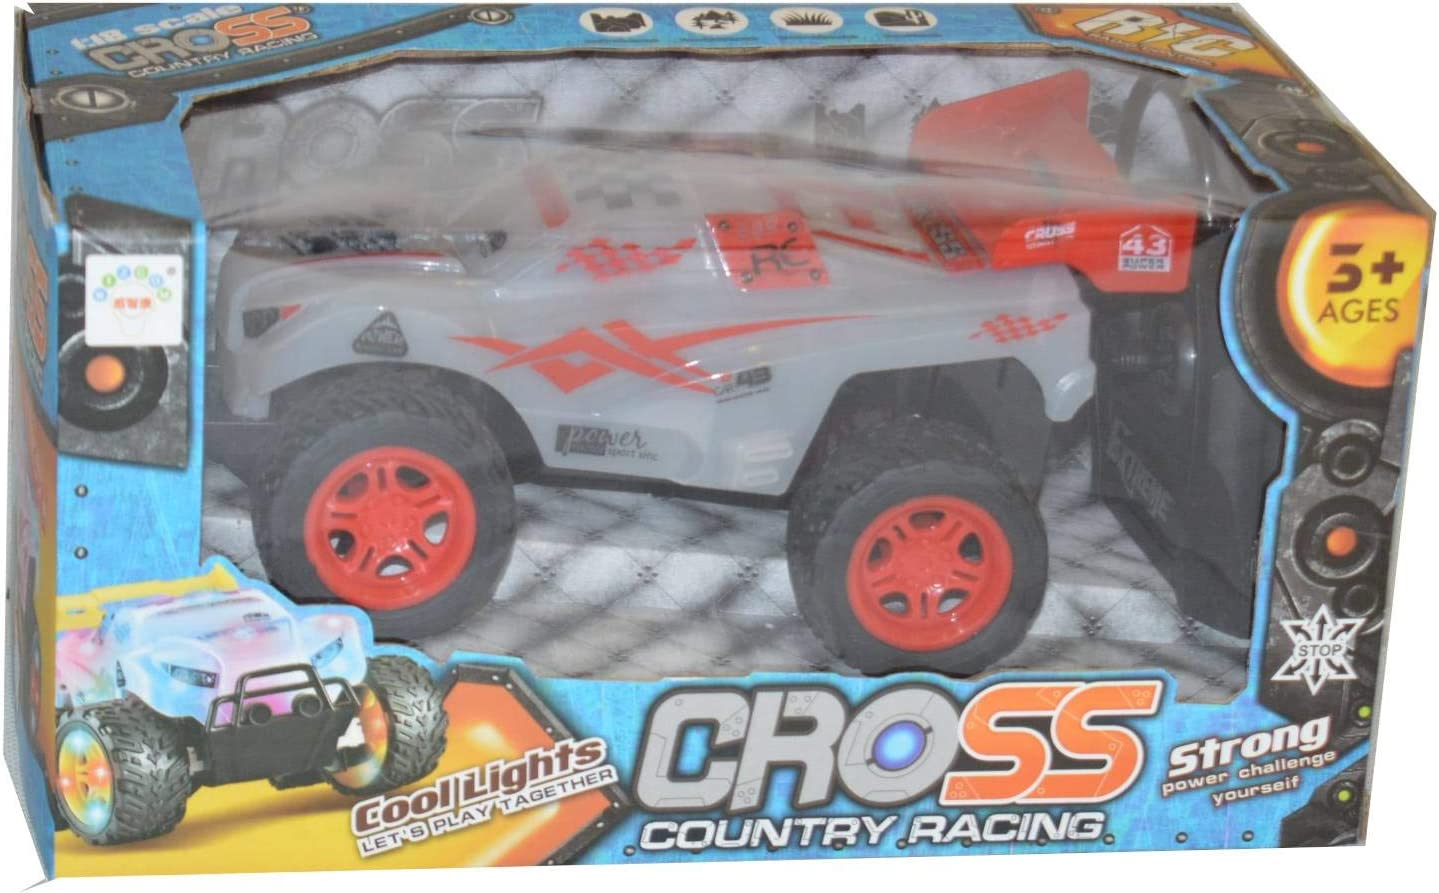 Explorer Cross Country Racing 1:18 Scale RC Car Childrens Remote Control Racer Off Road LED Lights Wireless Remote Red